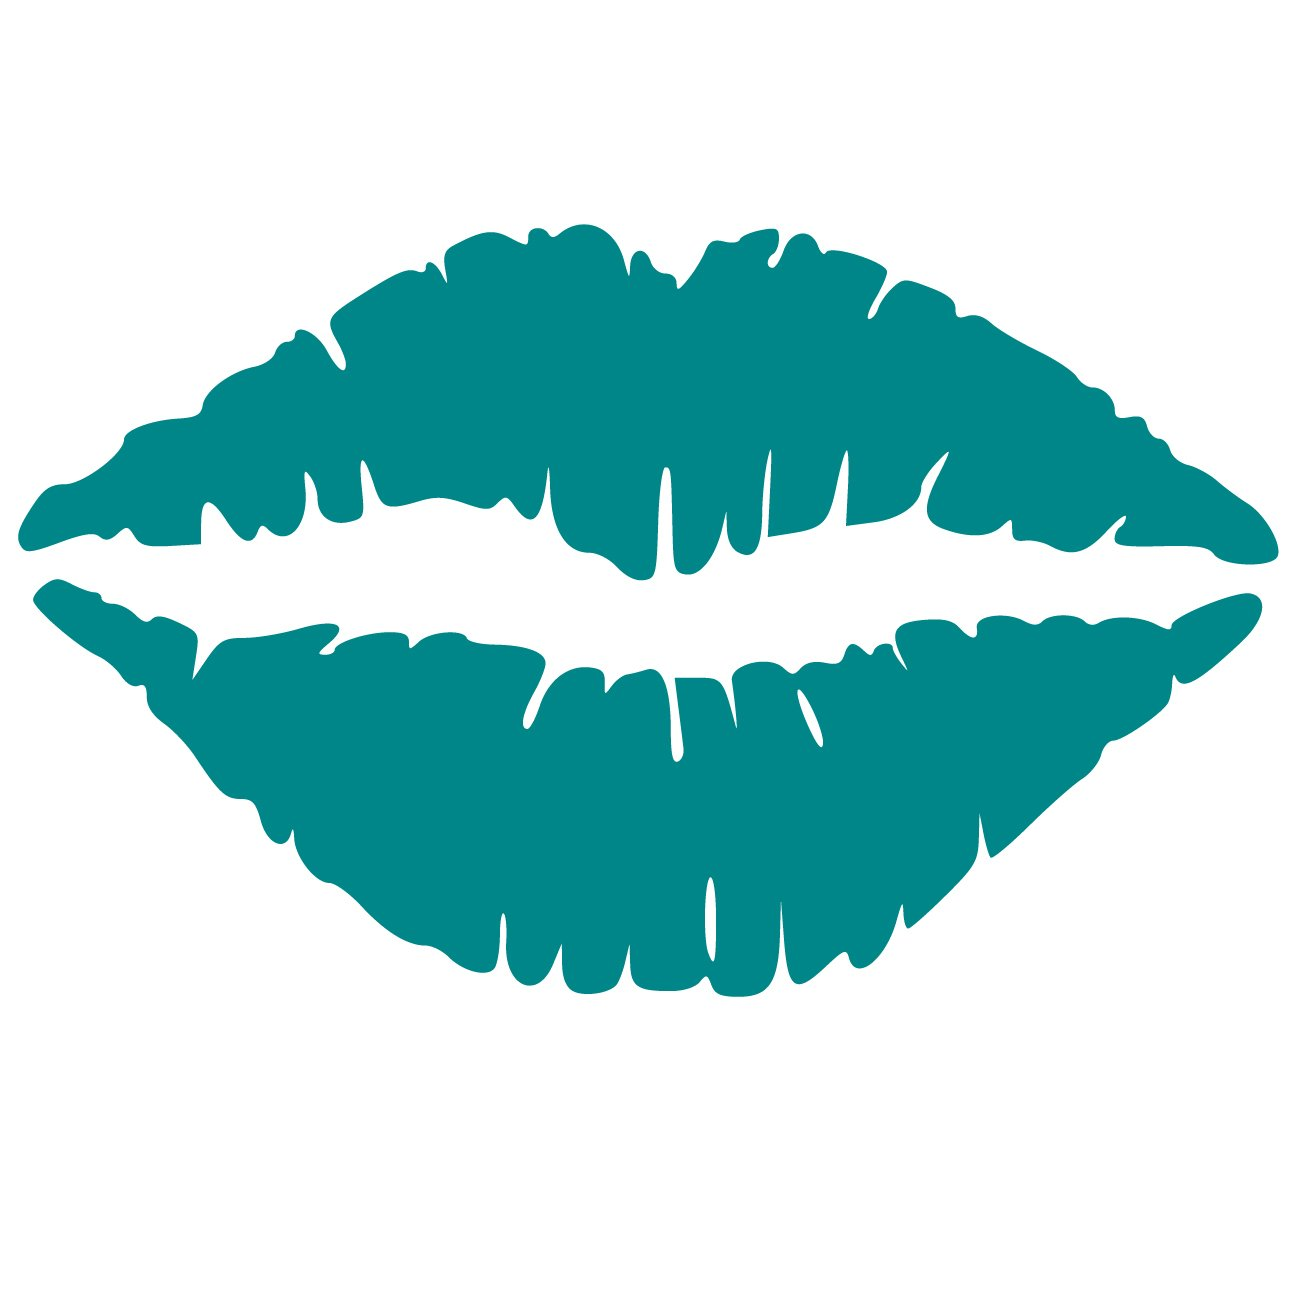 Kiss Wall Decal Sticker - Kissing Lips Decoration Mural - Decal Stickers and Mural for Kids Boys Girls Room and Bedroom. Kiss Teal Wall Art for Home Decor and Decoration - Silhouette Mural